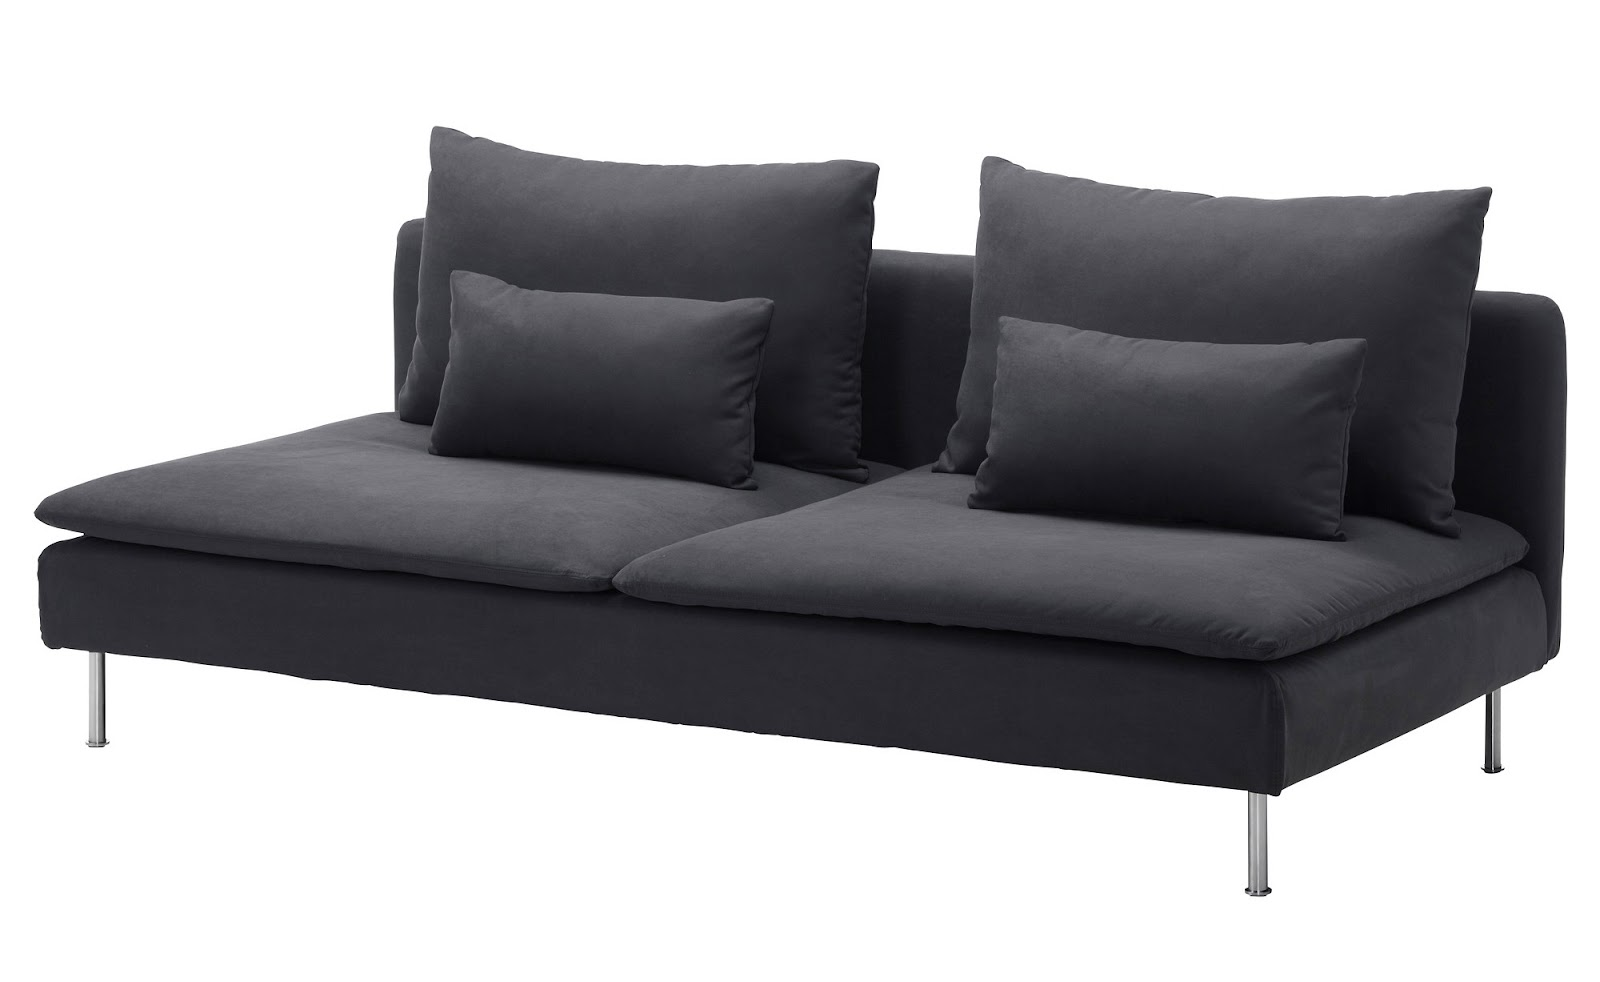 Sofa Company Nl Reviews Small Single Bed Uk New Ikea Söderhamn Review Nordic Days By Flor